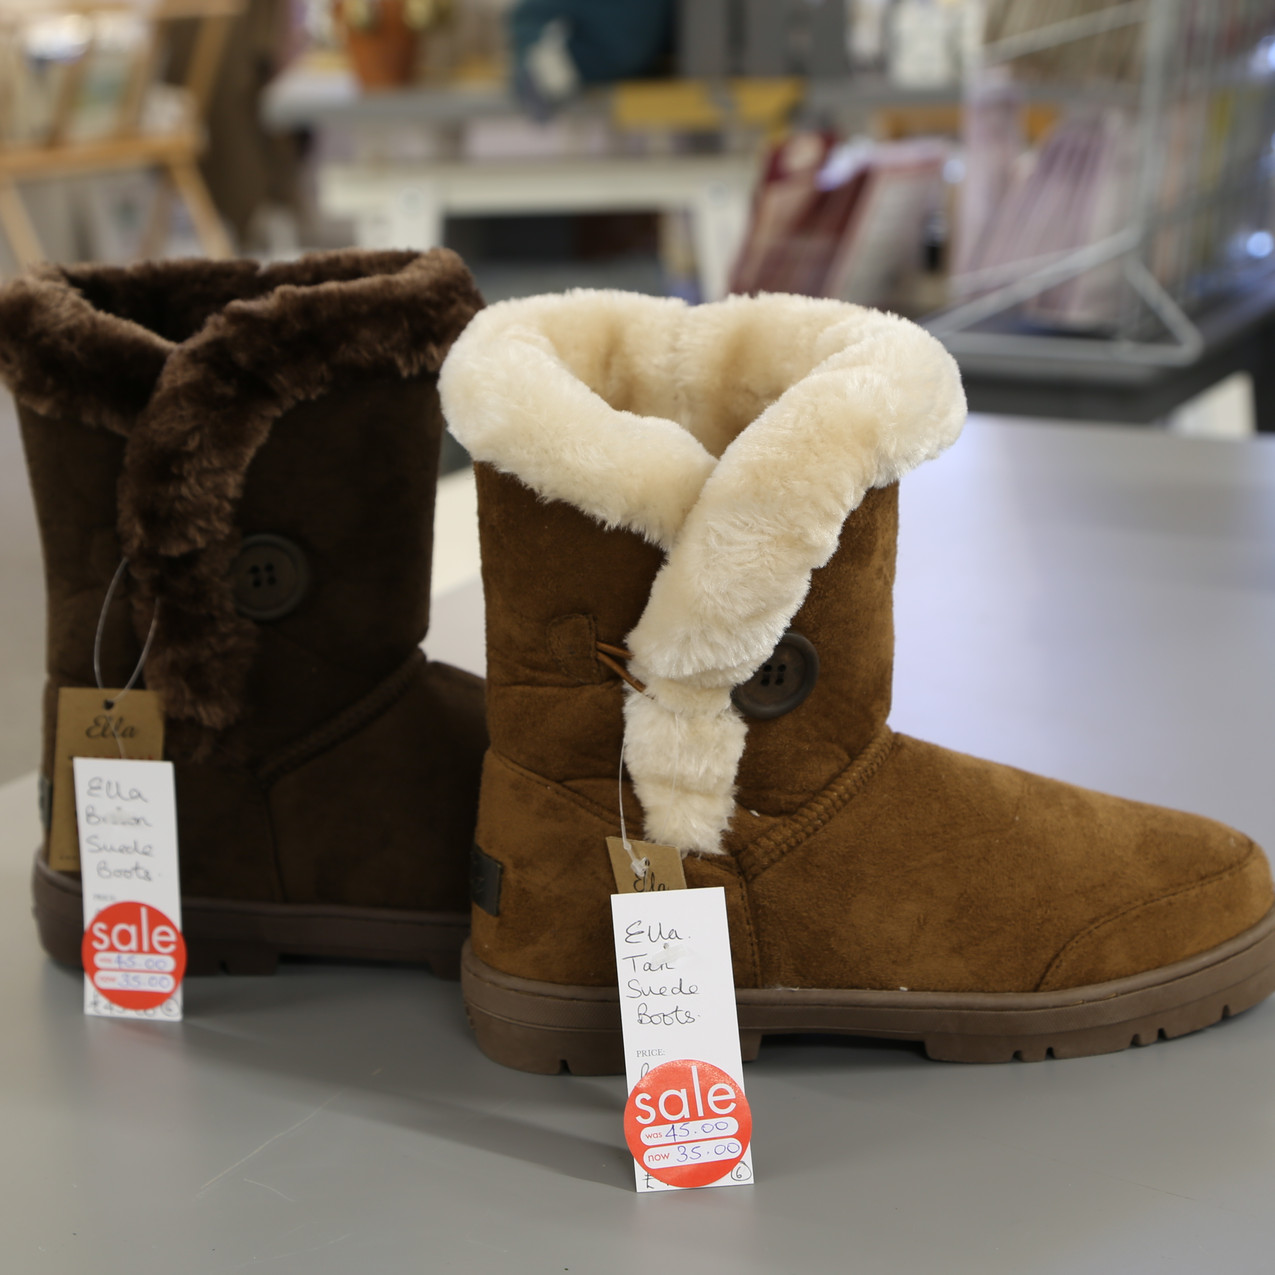 Suede Boots from £45 to £35